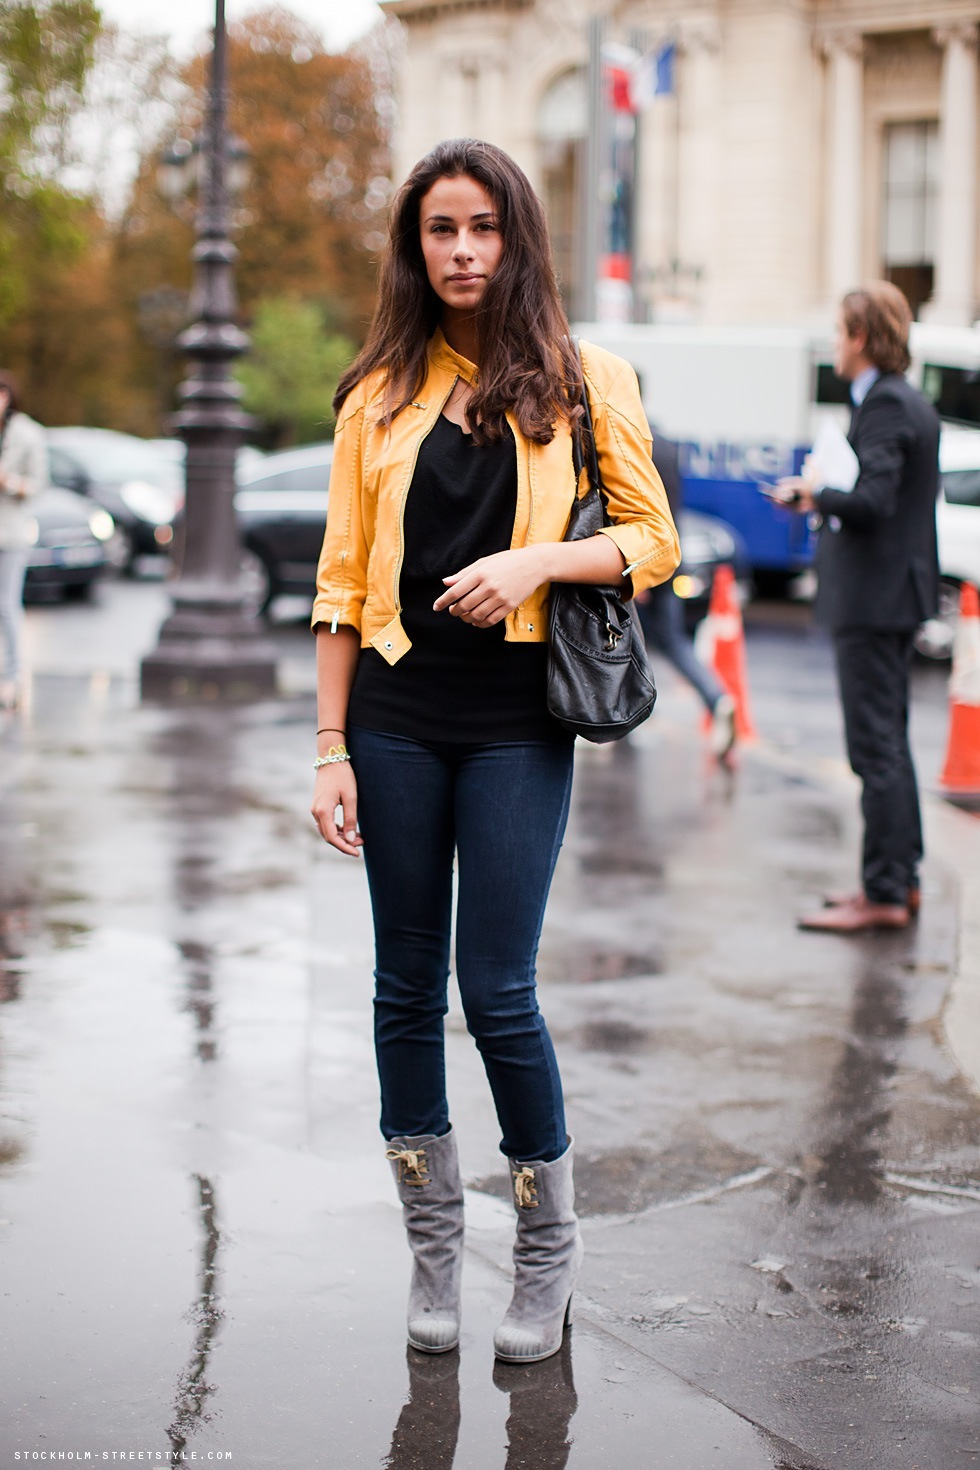 streetstyle images